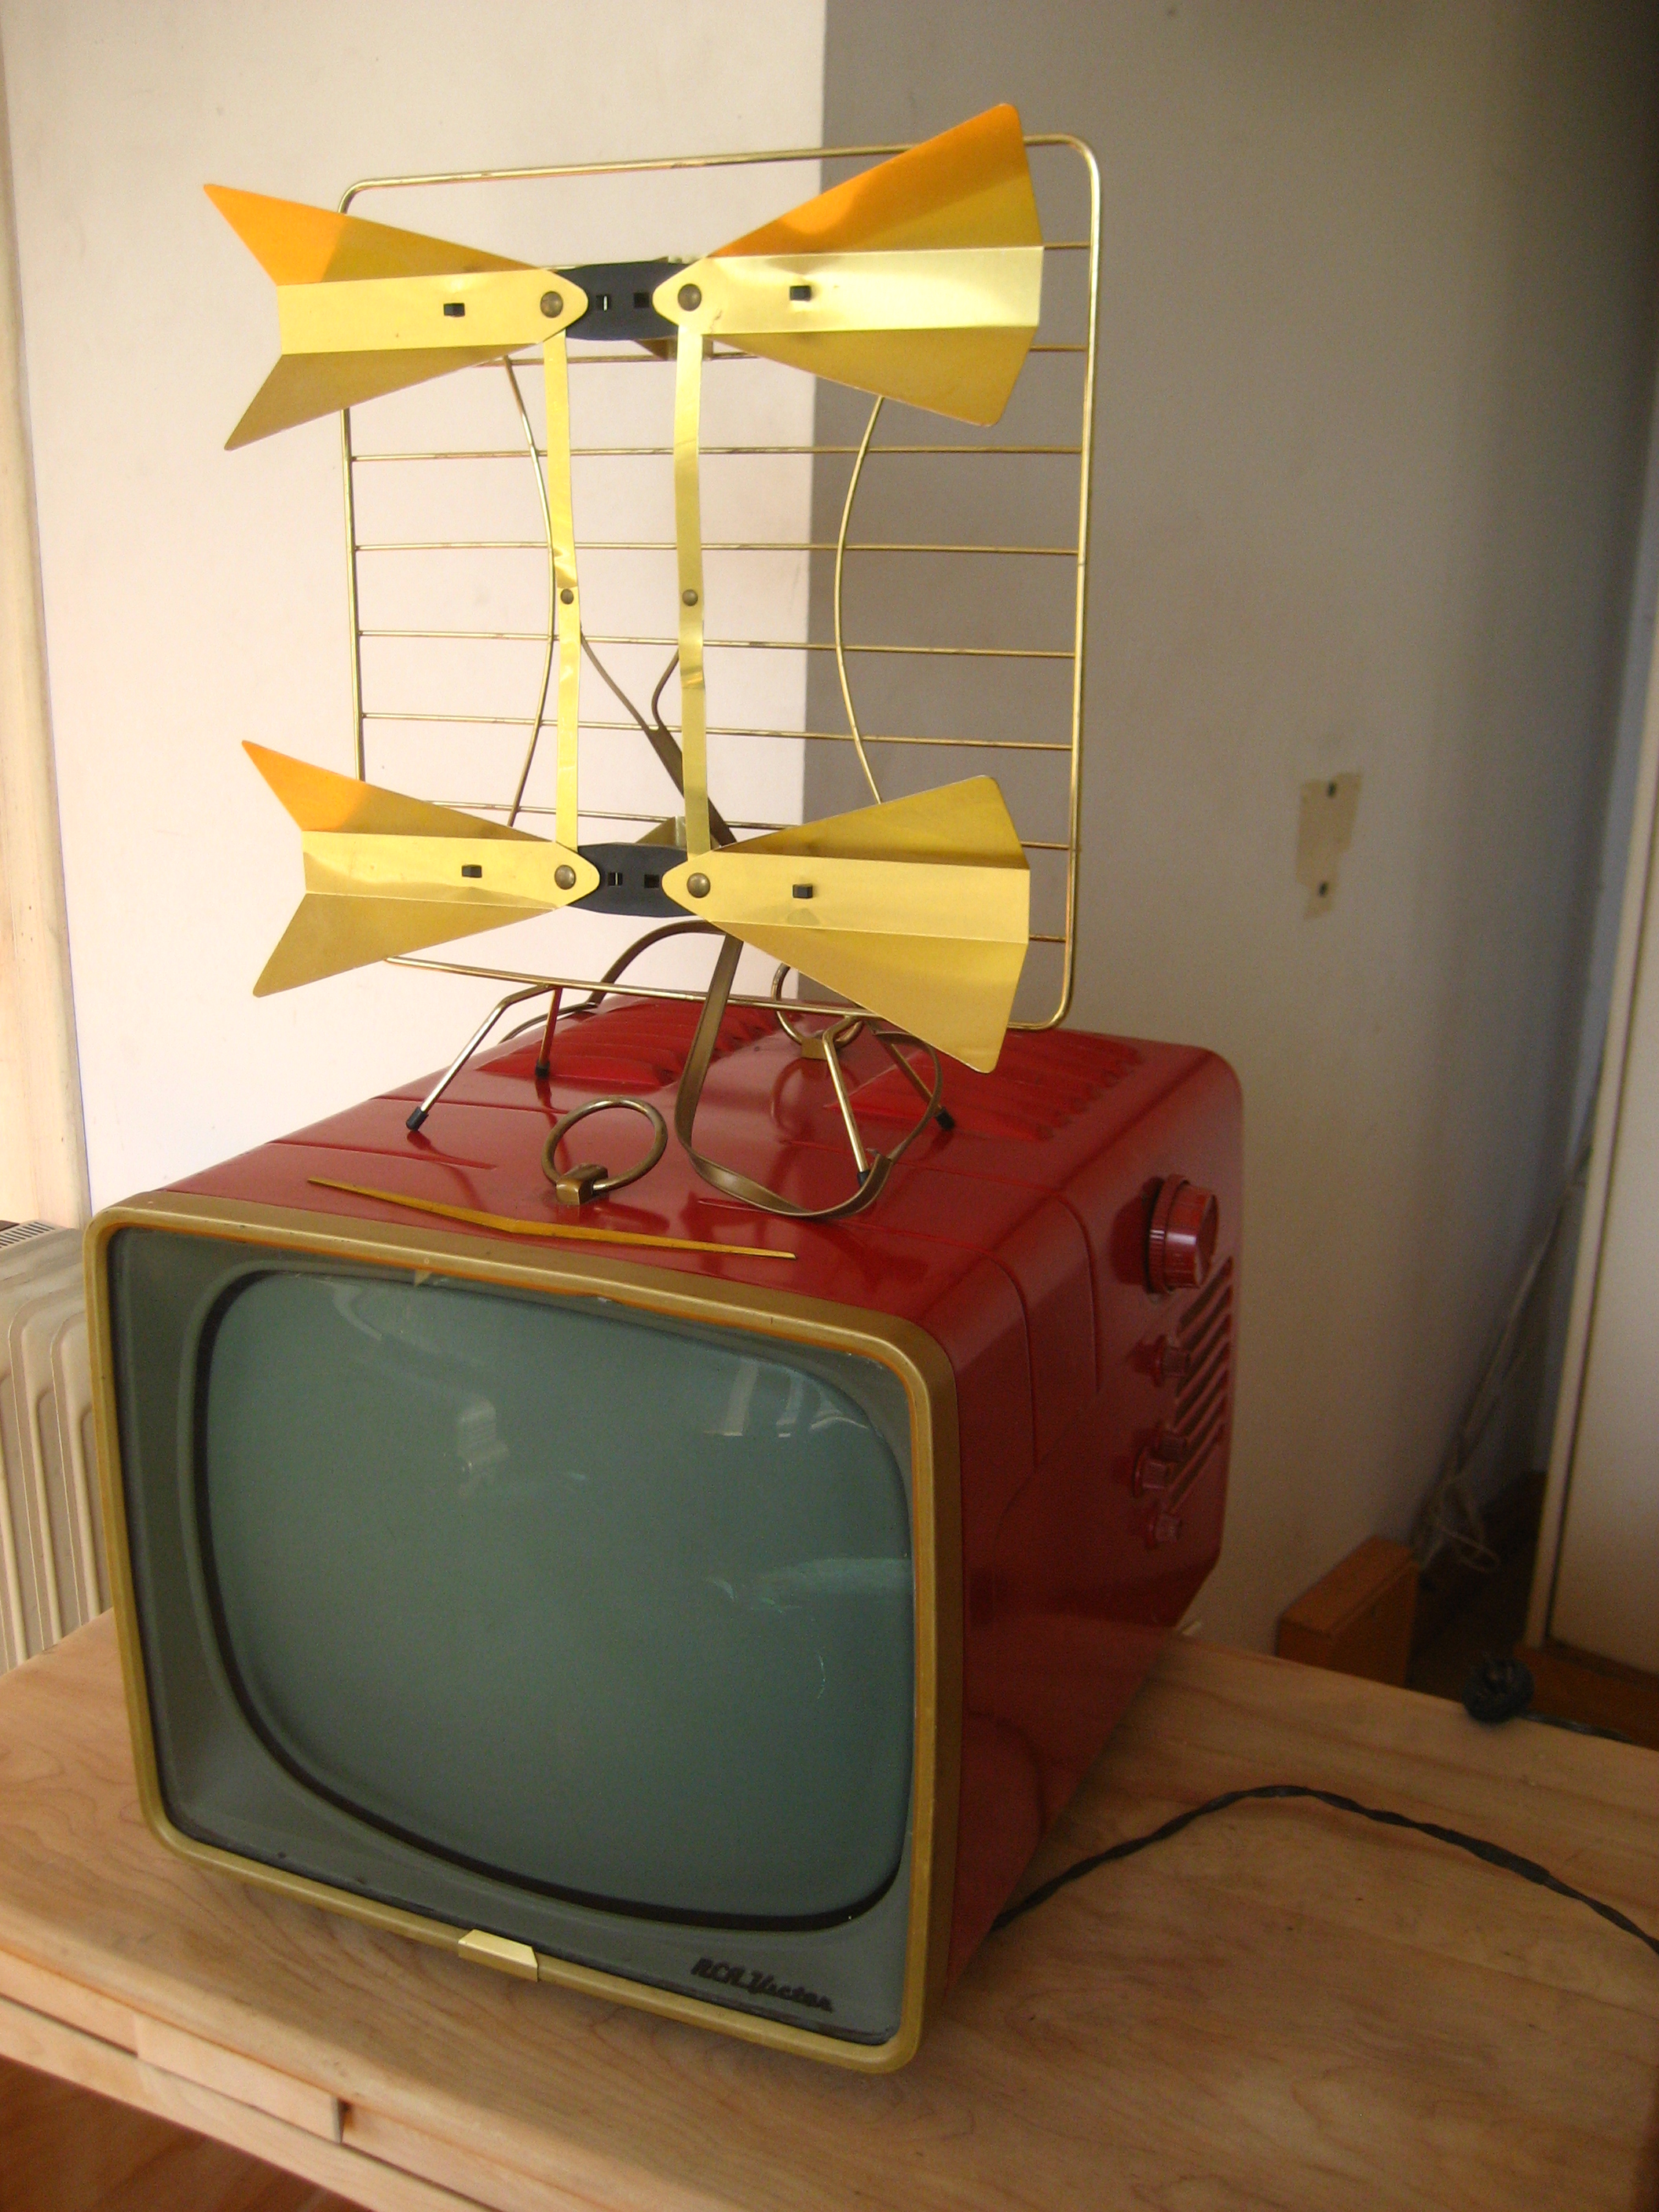 TV RCA red